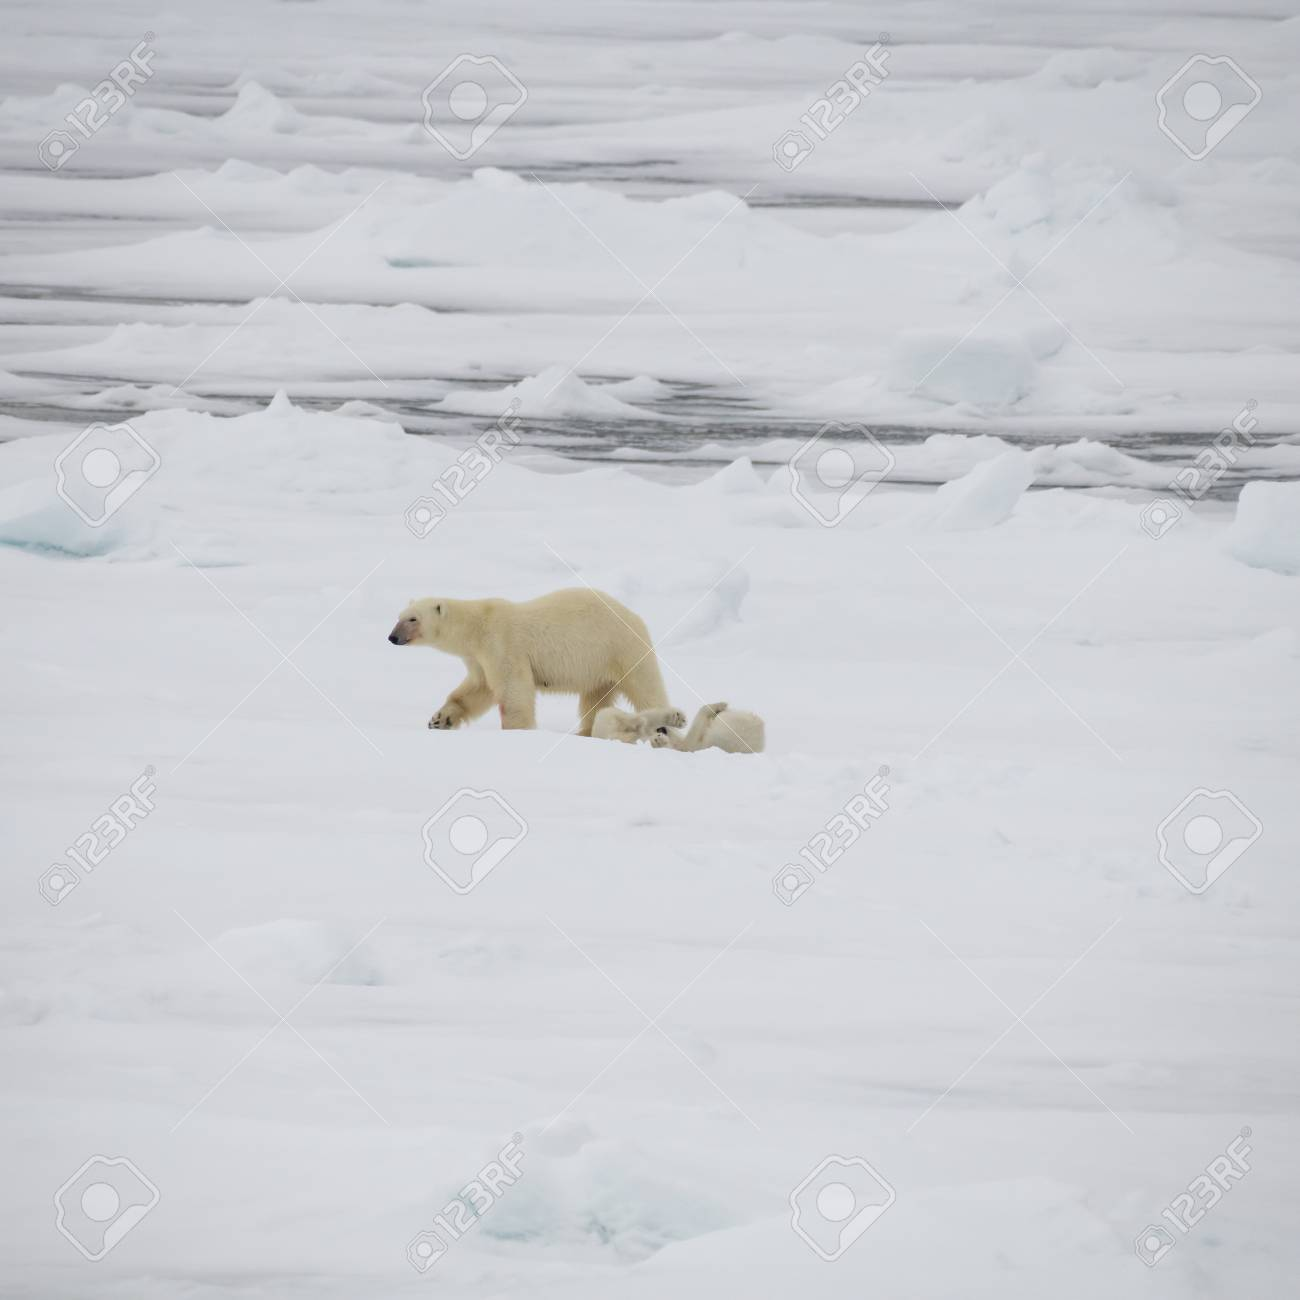 Polar bear with two cubs walking in an arctic landscape. - 121118021